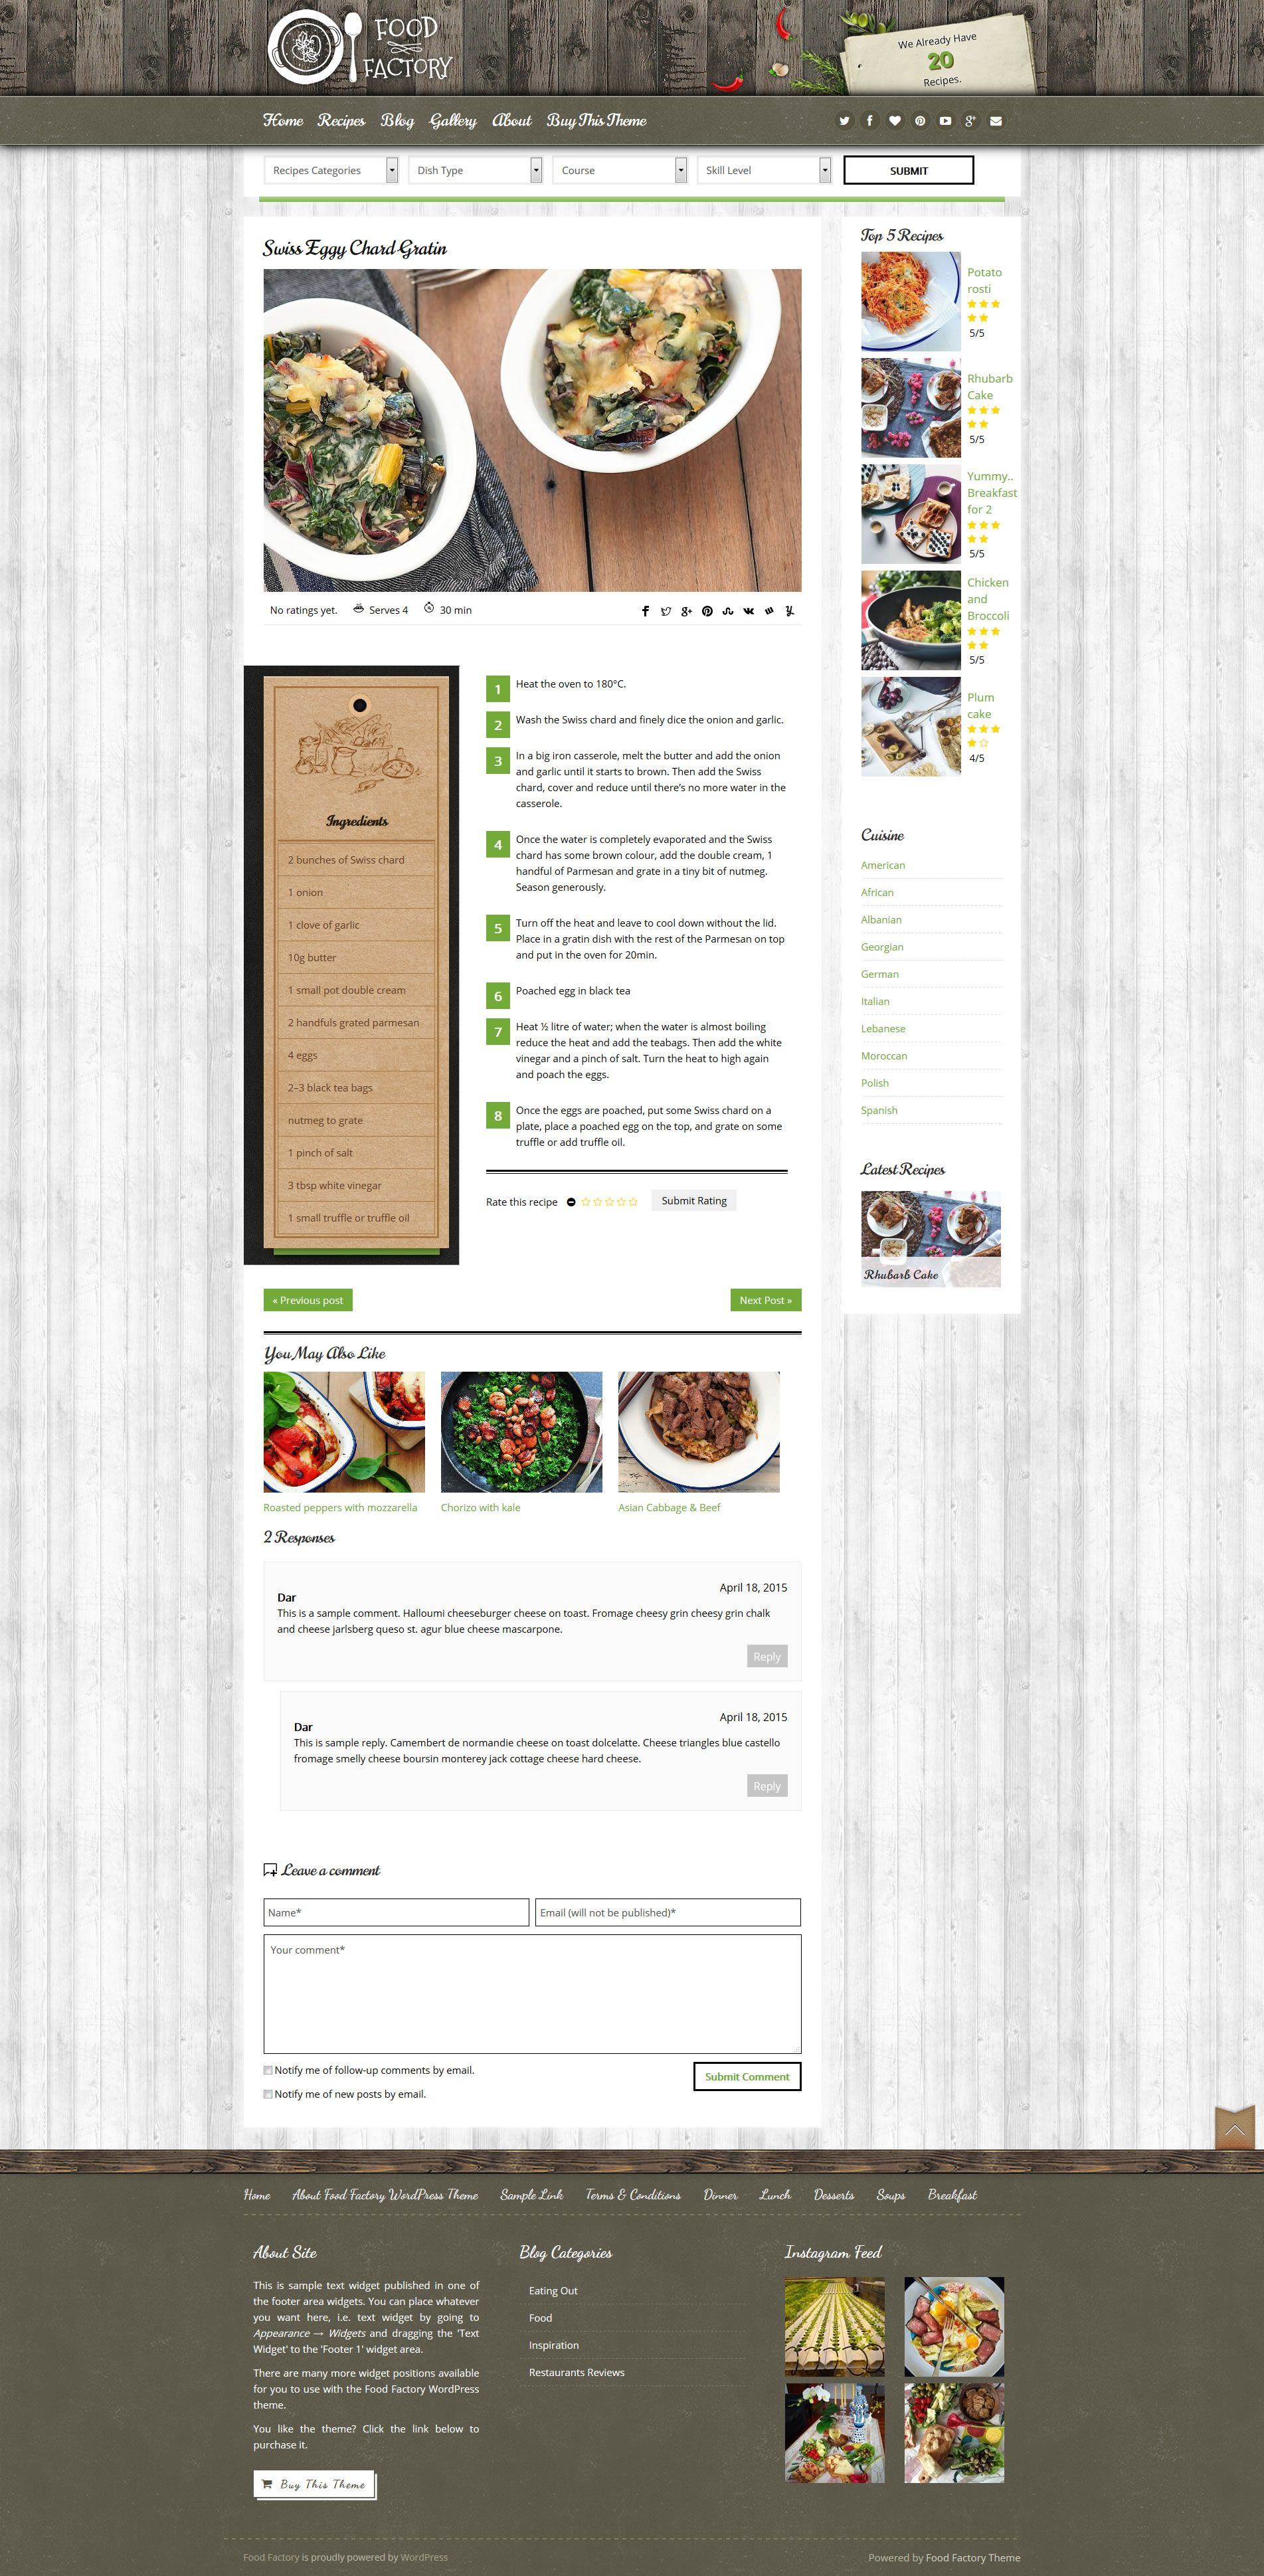 Food factory cookbook food recipes wordpress theme cookbook food factory rustic green style food recipes wordpress theme sample recipe page download forumfinder Image collections